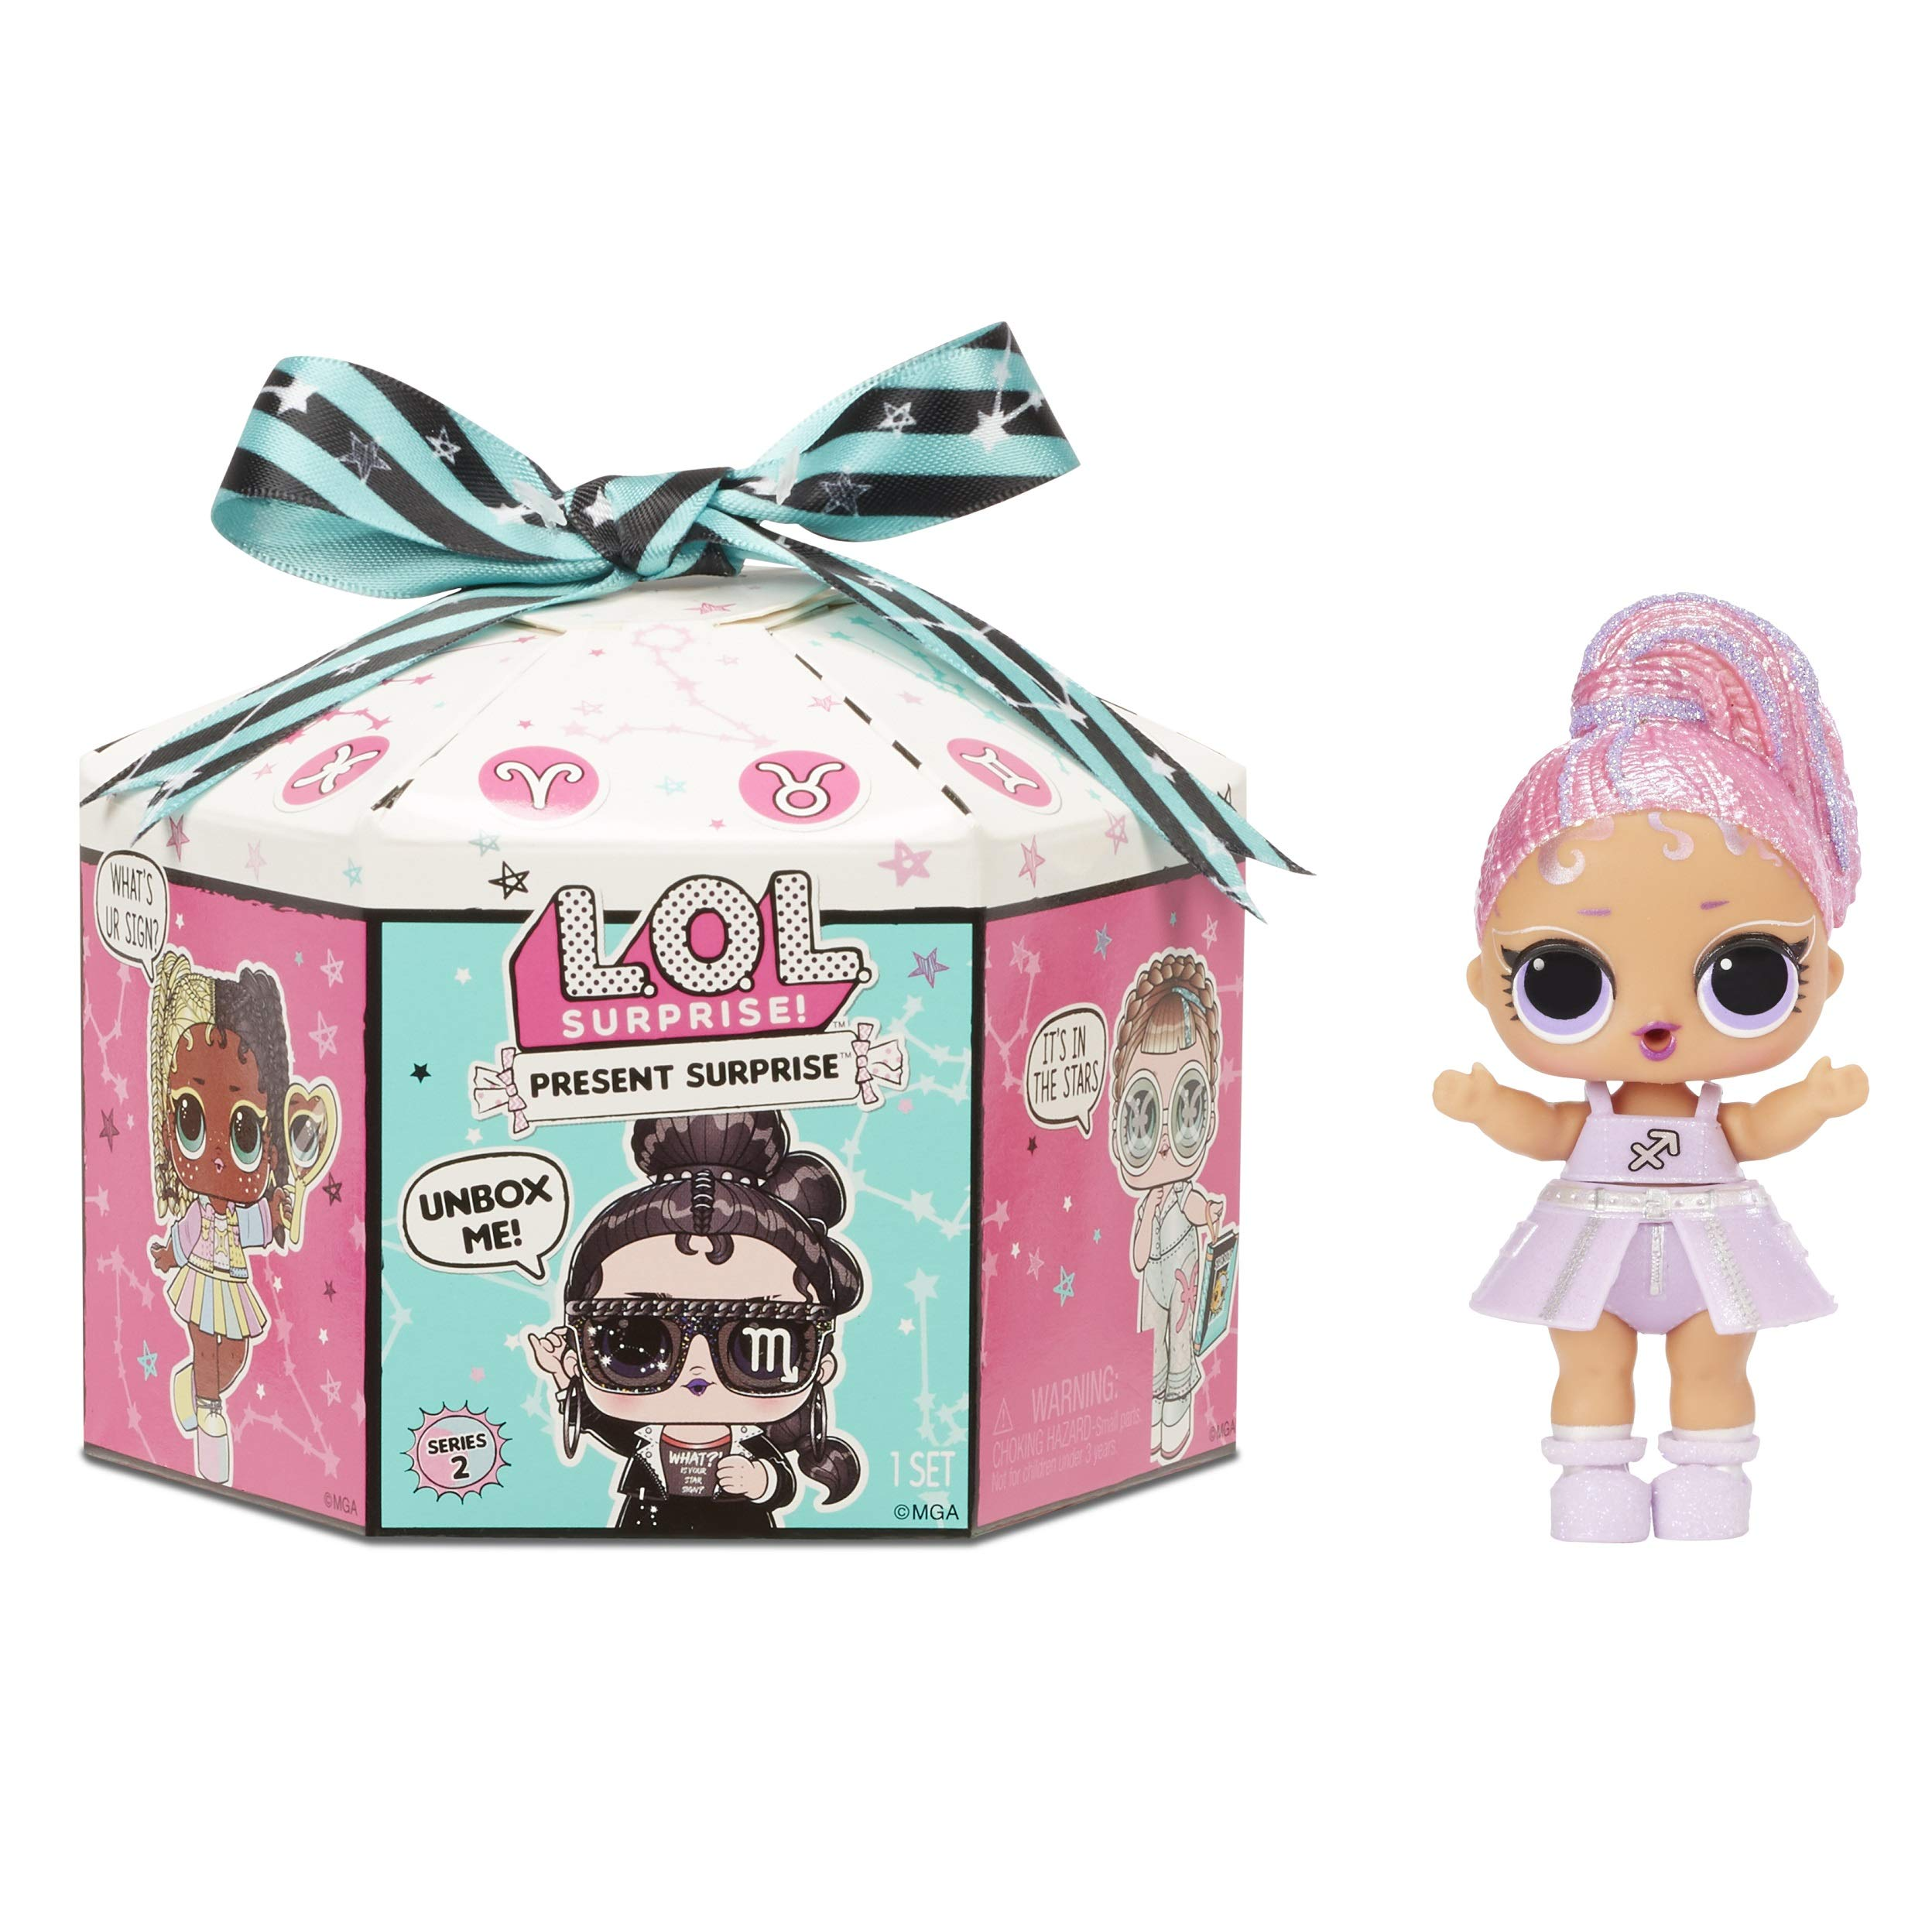 LOL Surprise Present Surprise Series 2 Glitter Shimmer Star Sign Themed Doll with 8 Surprises, Accessories, Dolls